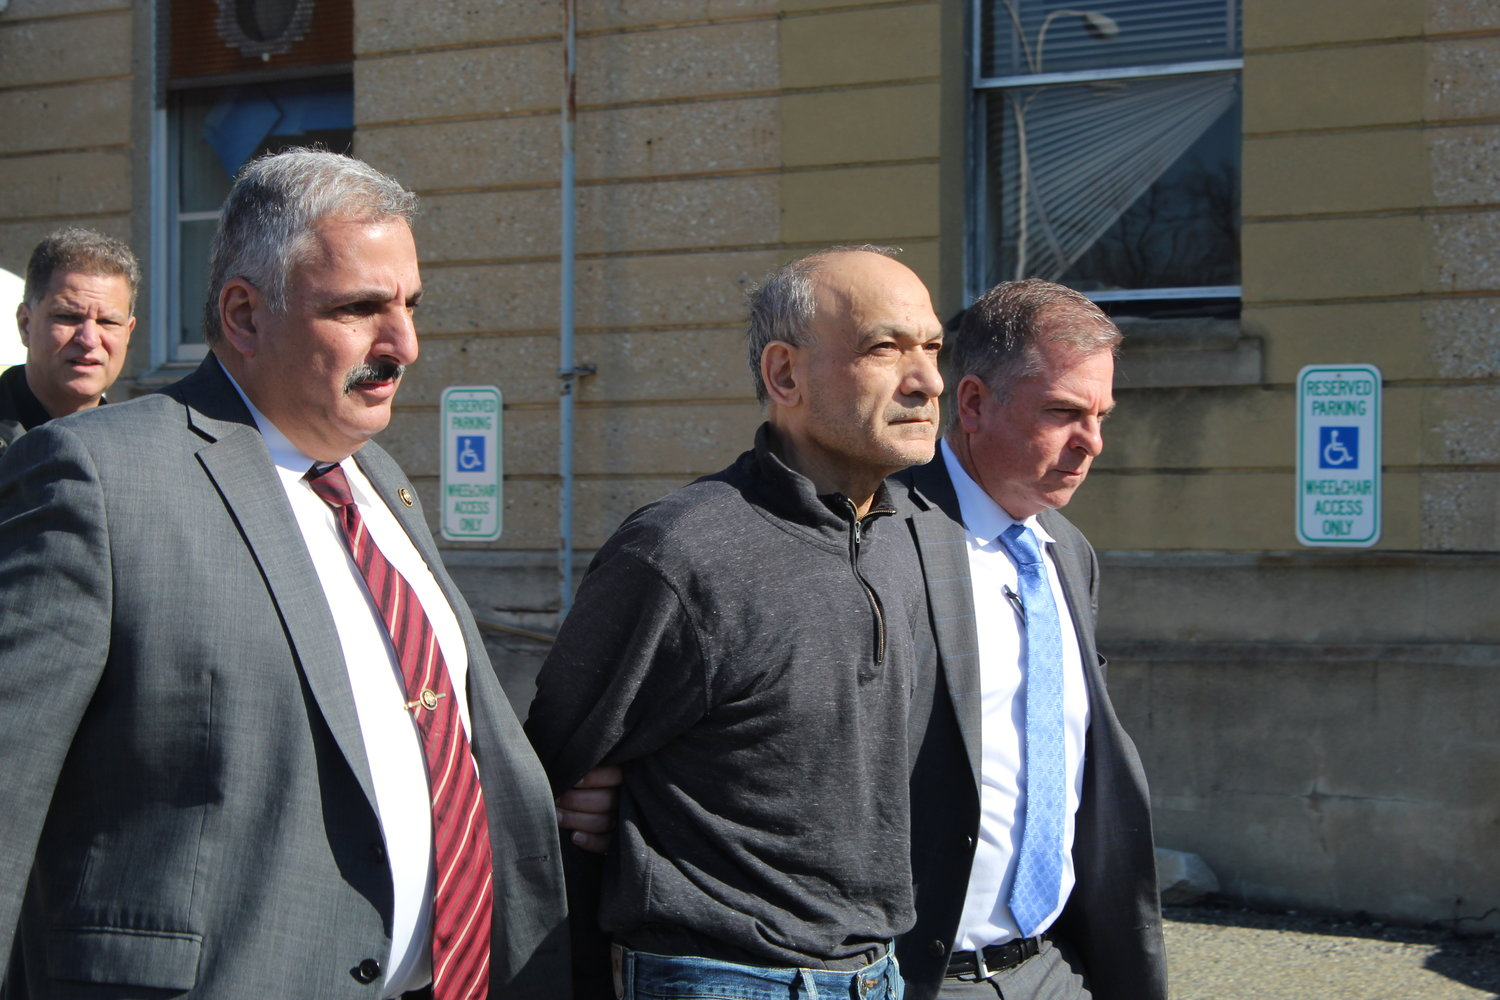 Detectives escorted John Gerges, center, of Merrick, from the detention facility at Nassau County Police Headquarters Monday morning. Gerges was arrested for allegedly strangling his wife, Marvat Gerges, to death in their home at 14 Lindgren St.